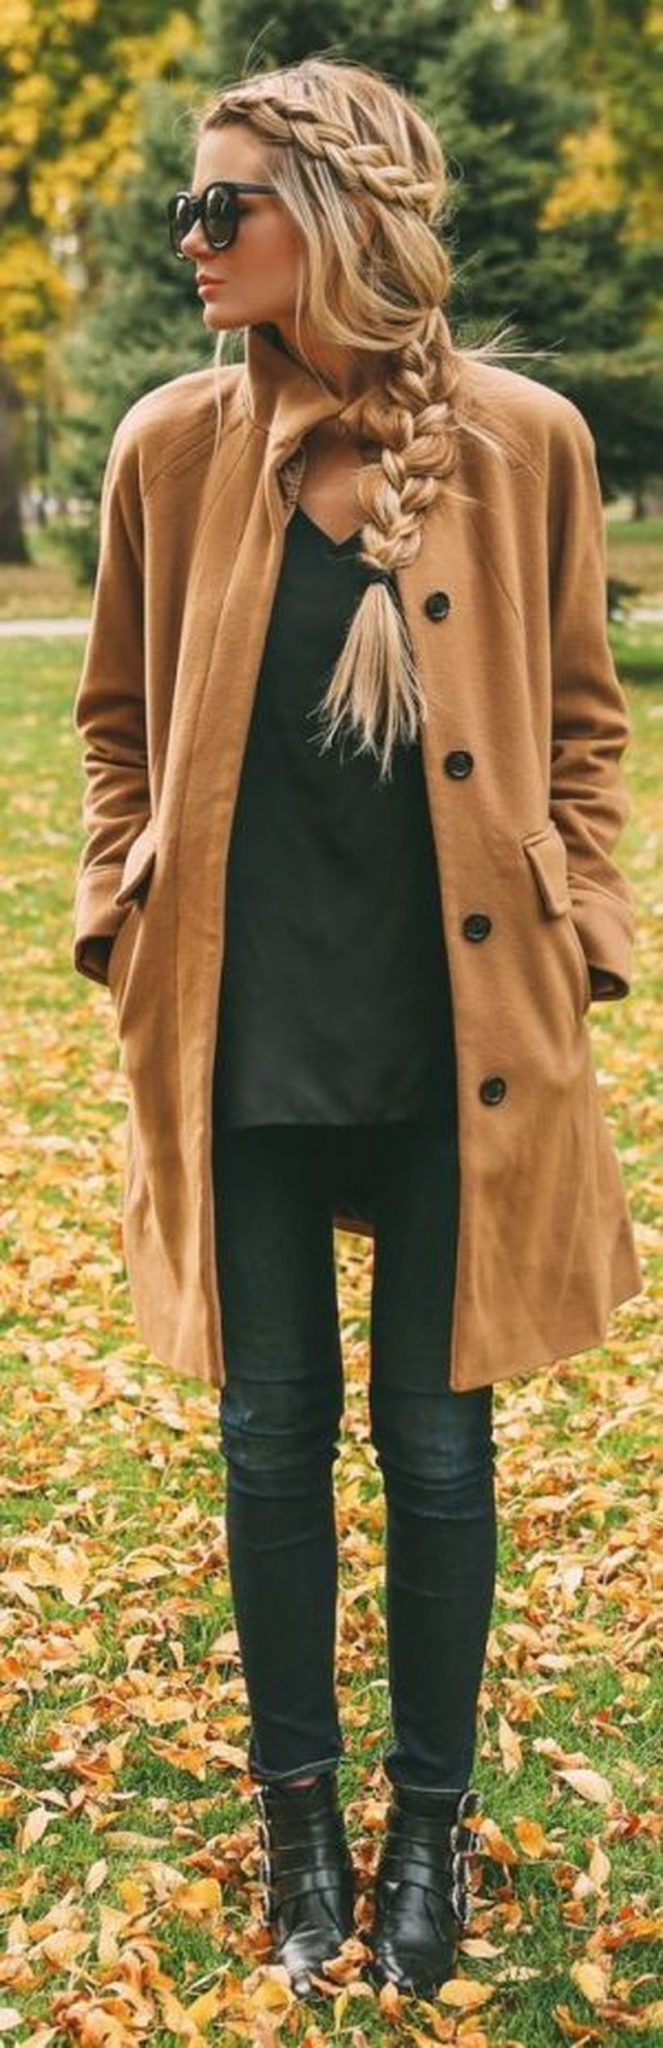 Fashionable over 50 fall outfits ideas 8